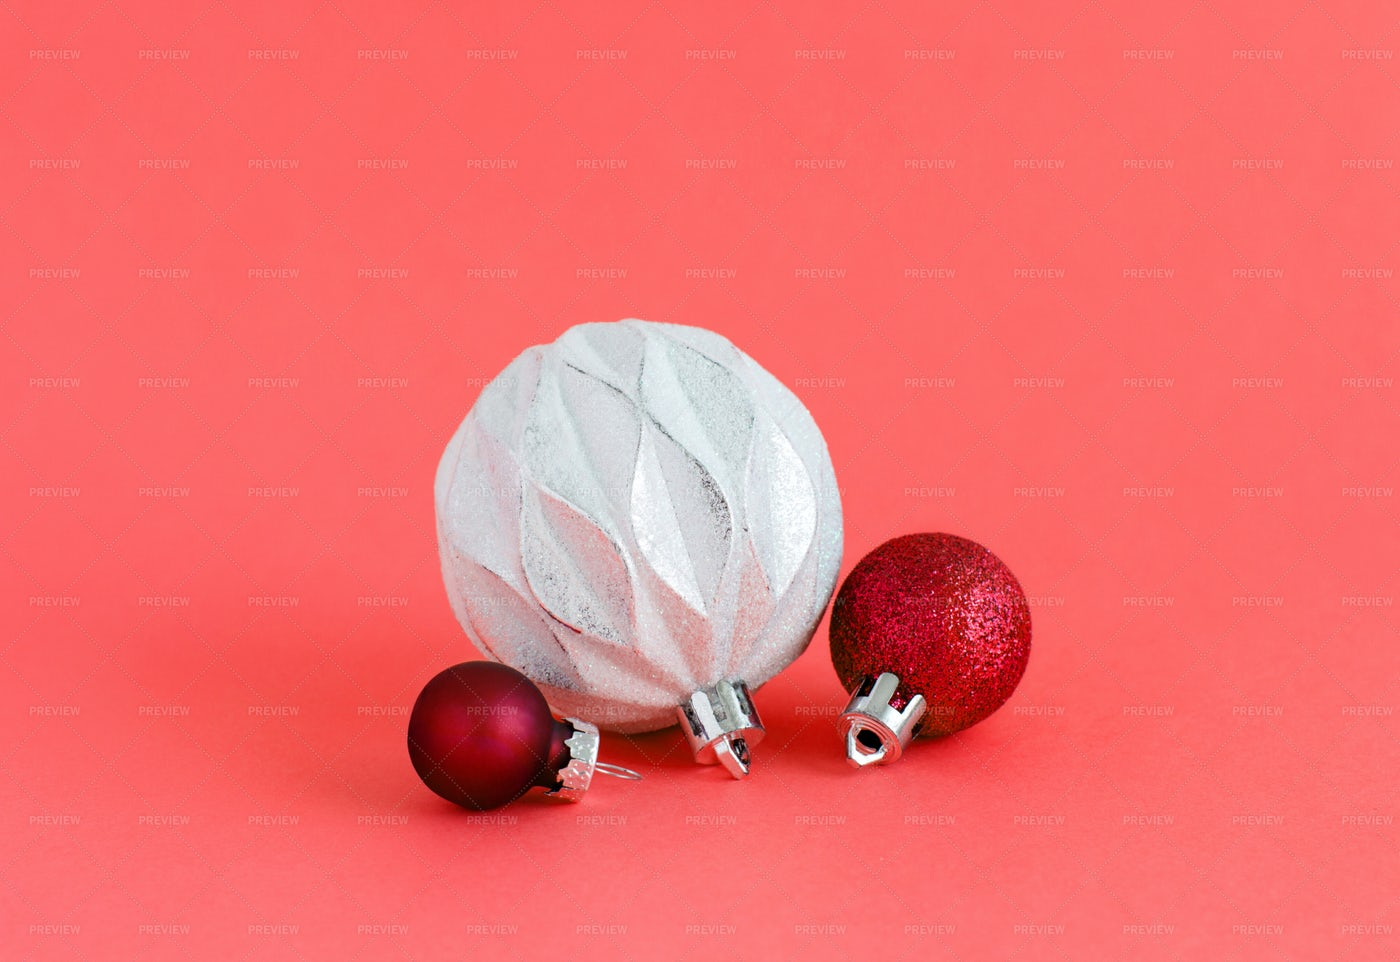 Red And White Christmas Ornaments: Stock Photos